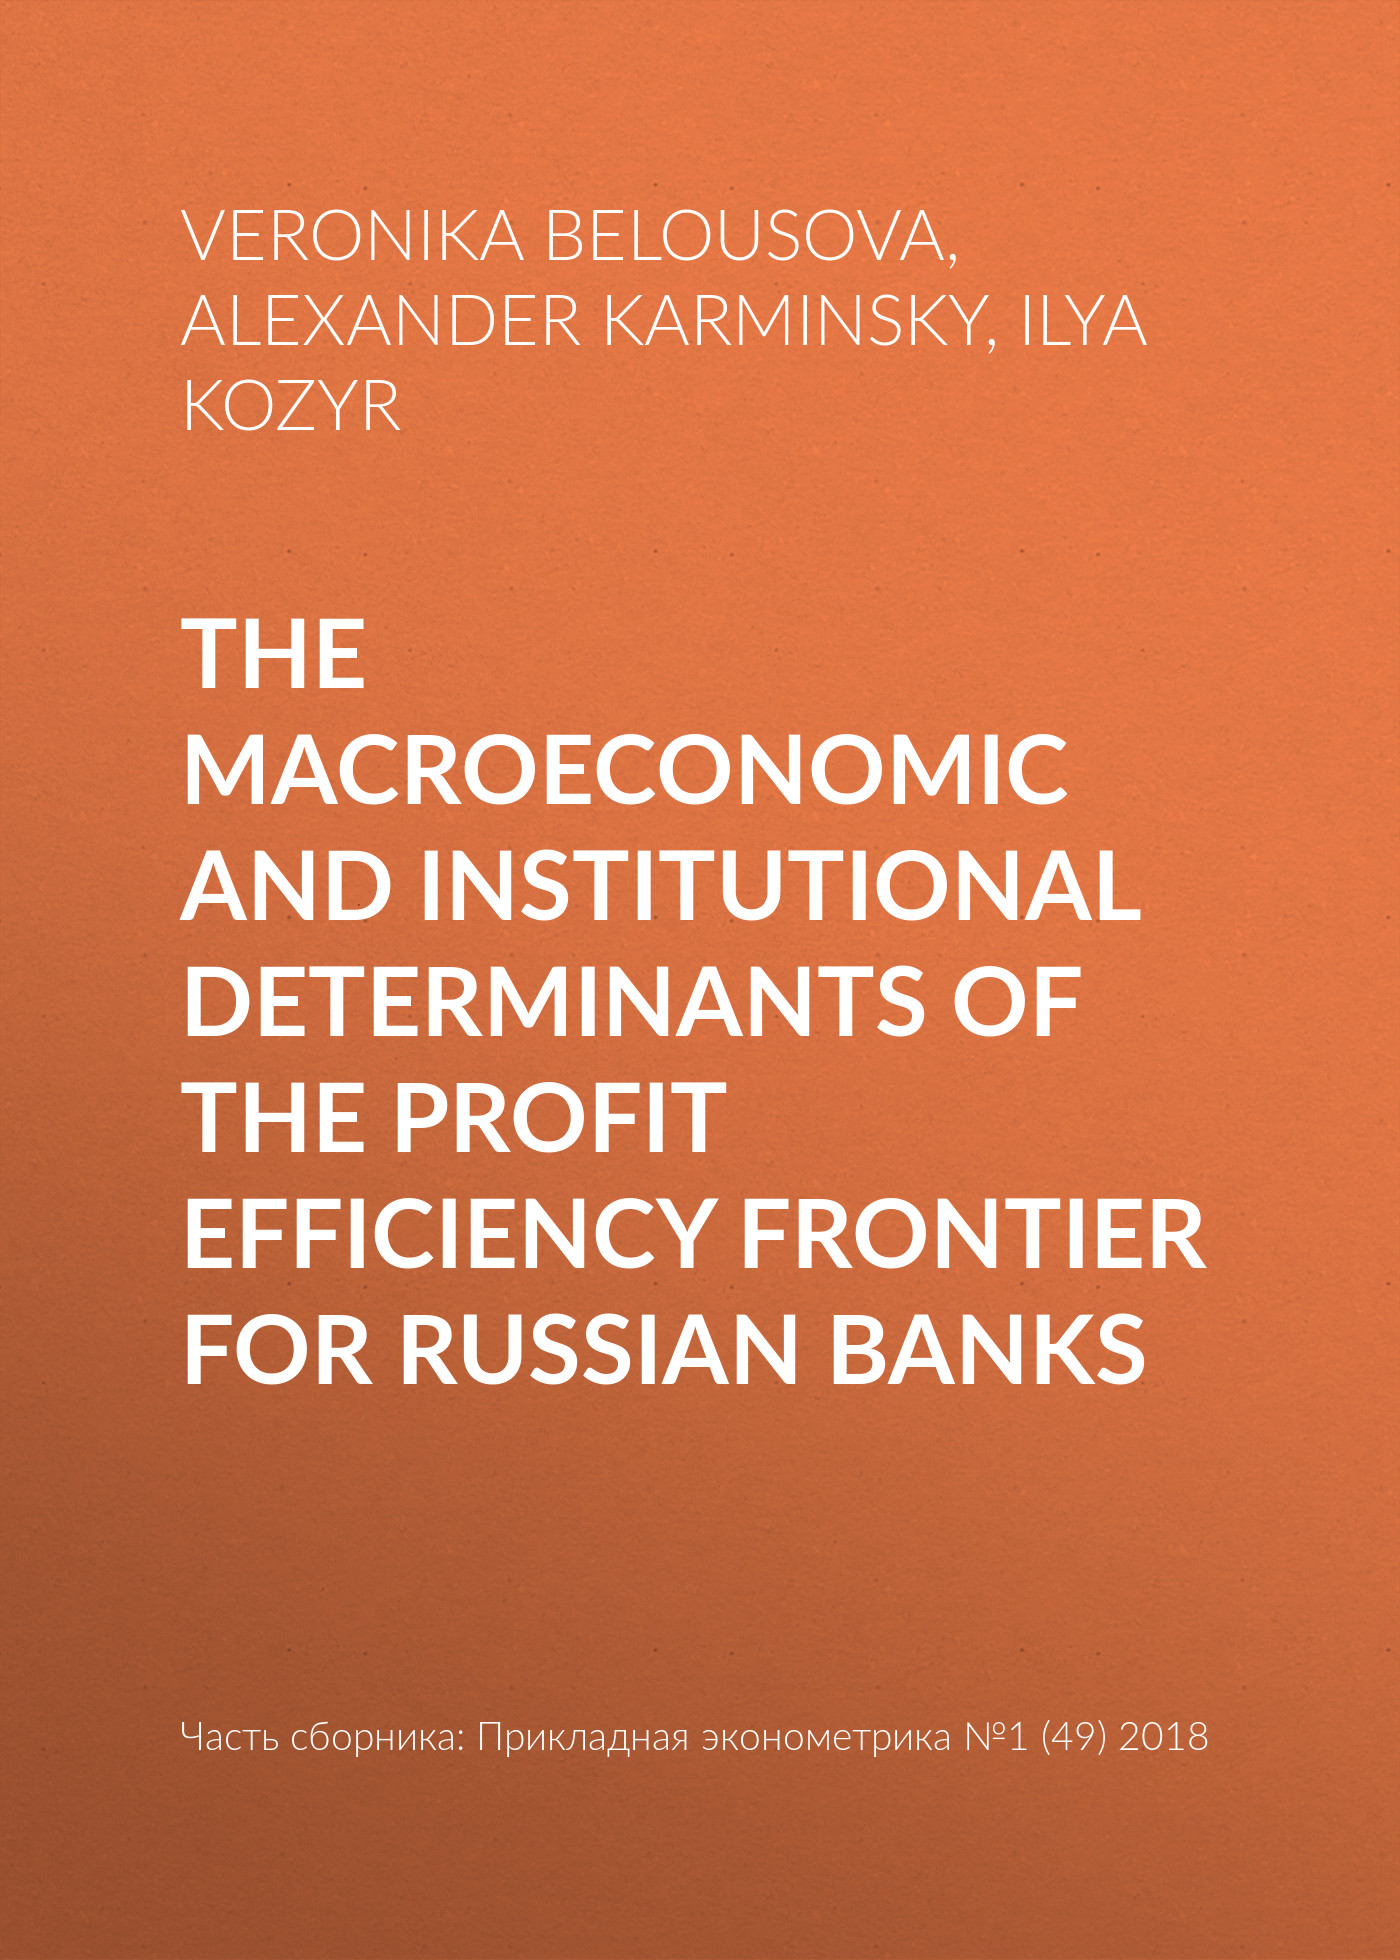 Veronika Belousova The macroeconomic and institutional determinants of the profit efficiency frontier for Russian banks [mumsbest] 3pcs reusable cloth diaper cover washable waterproof baby nappy pul suit 3 15kgs adjustable boy diaper covers